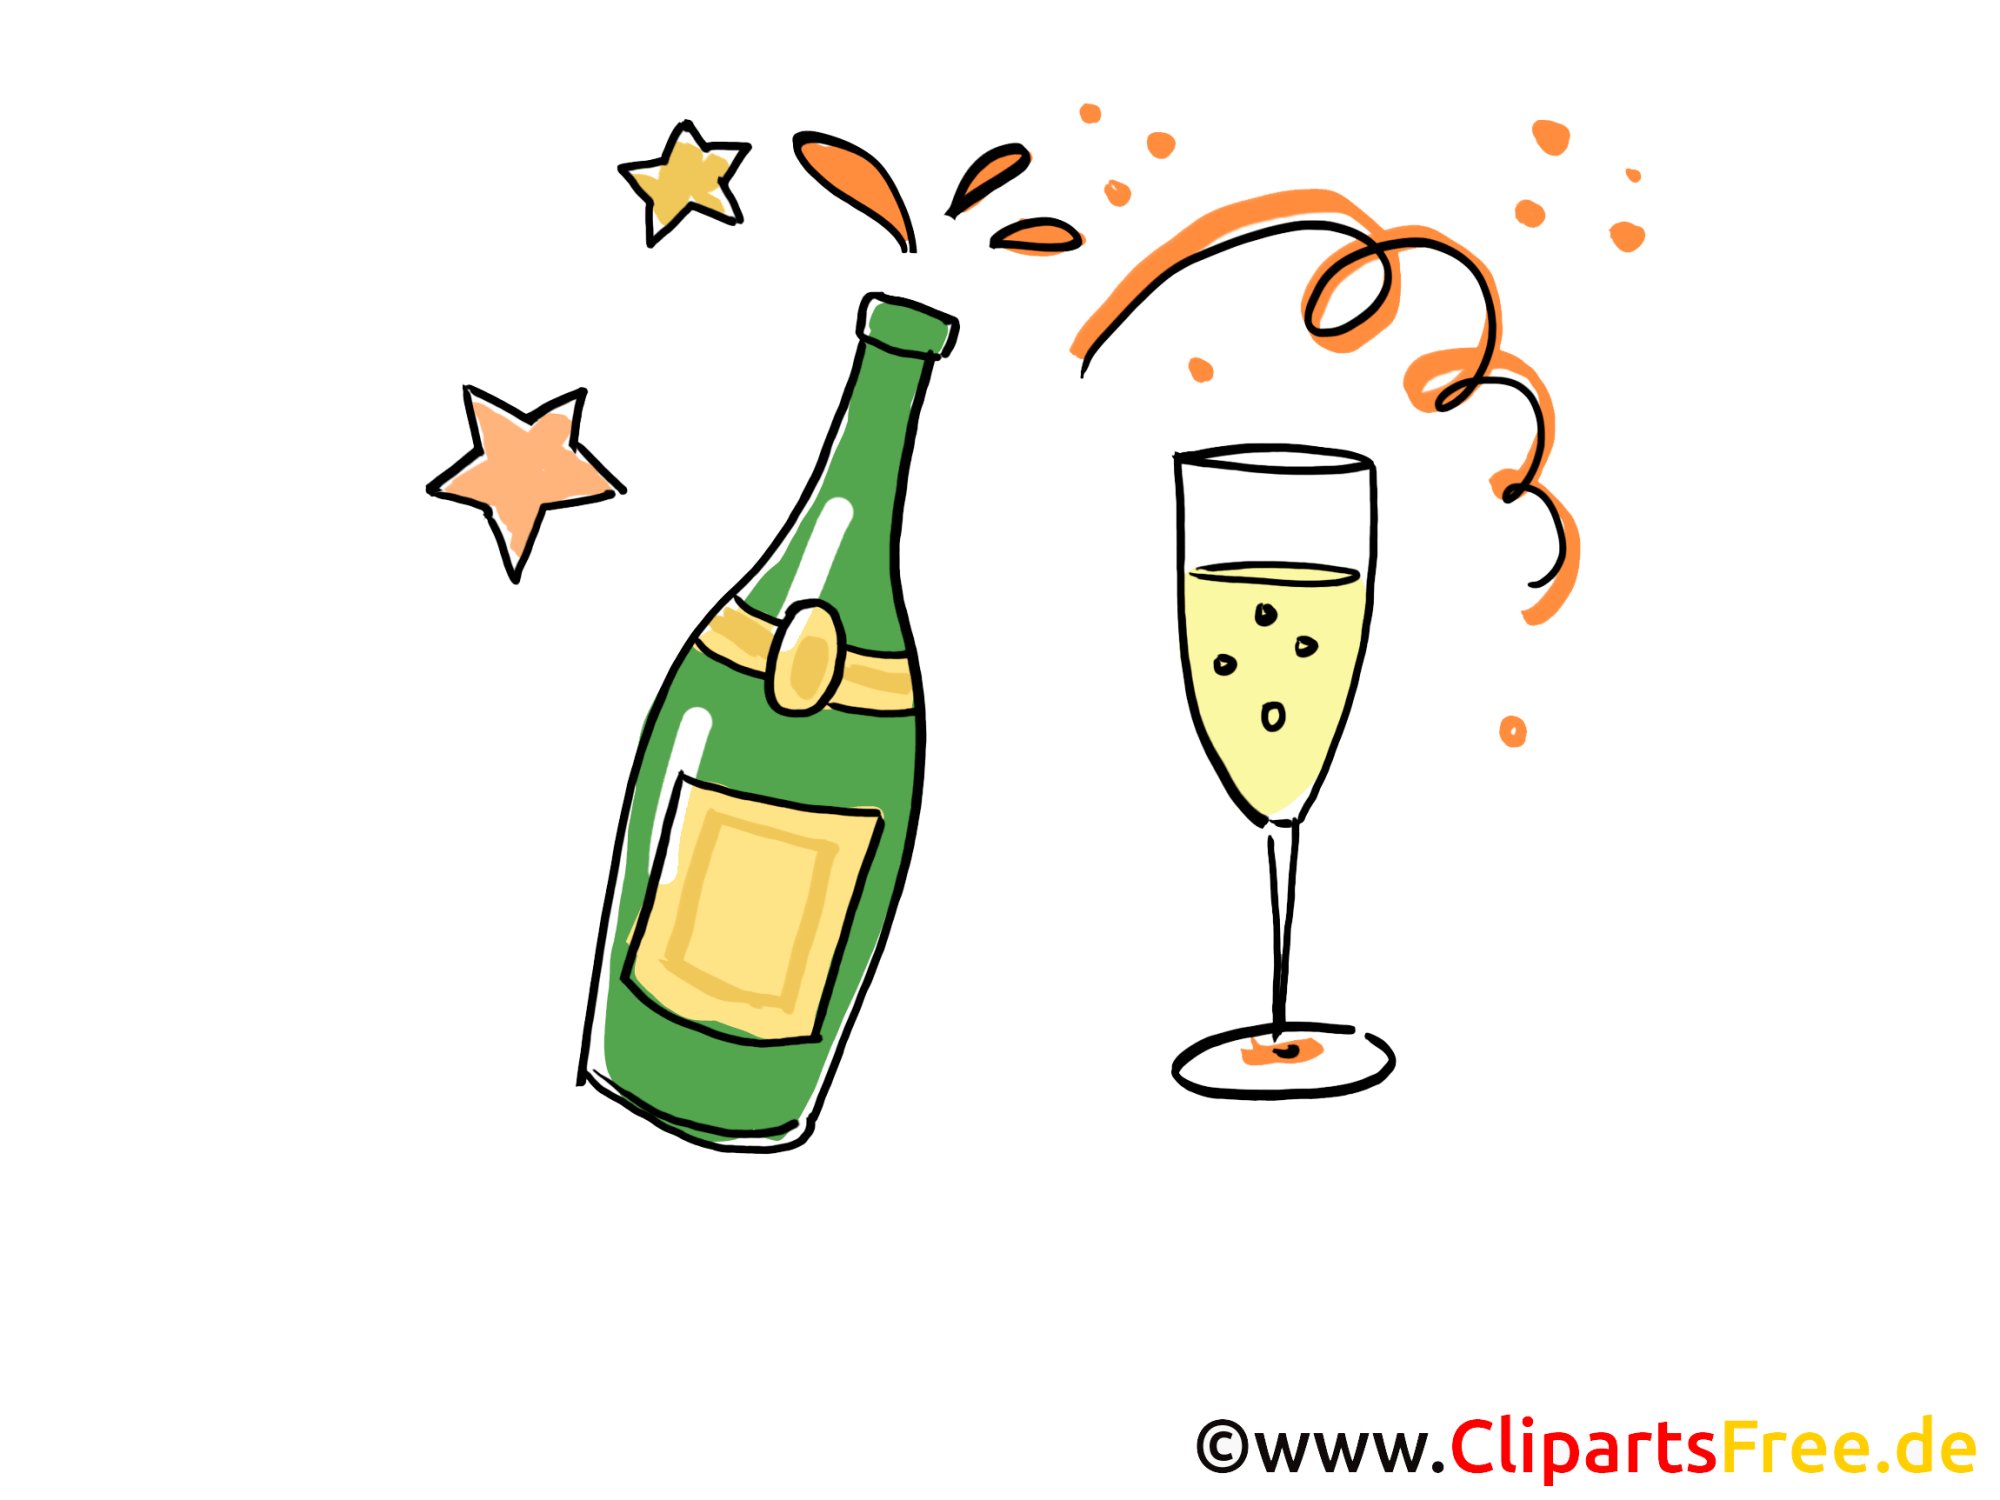 hight resolution of champagne clip art gratuit soir images gratuites faire la png